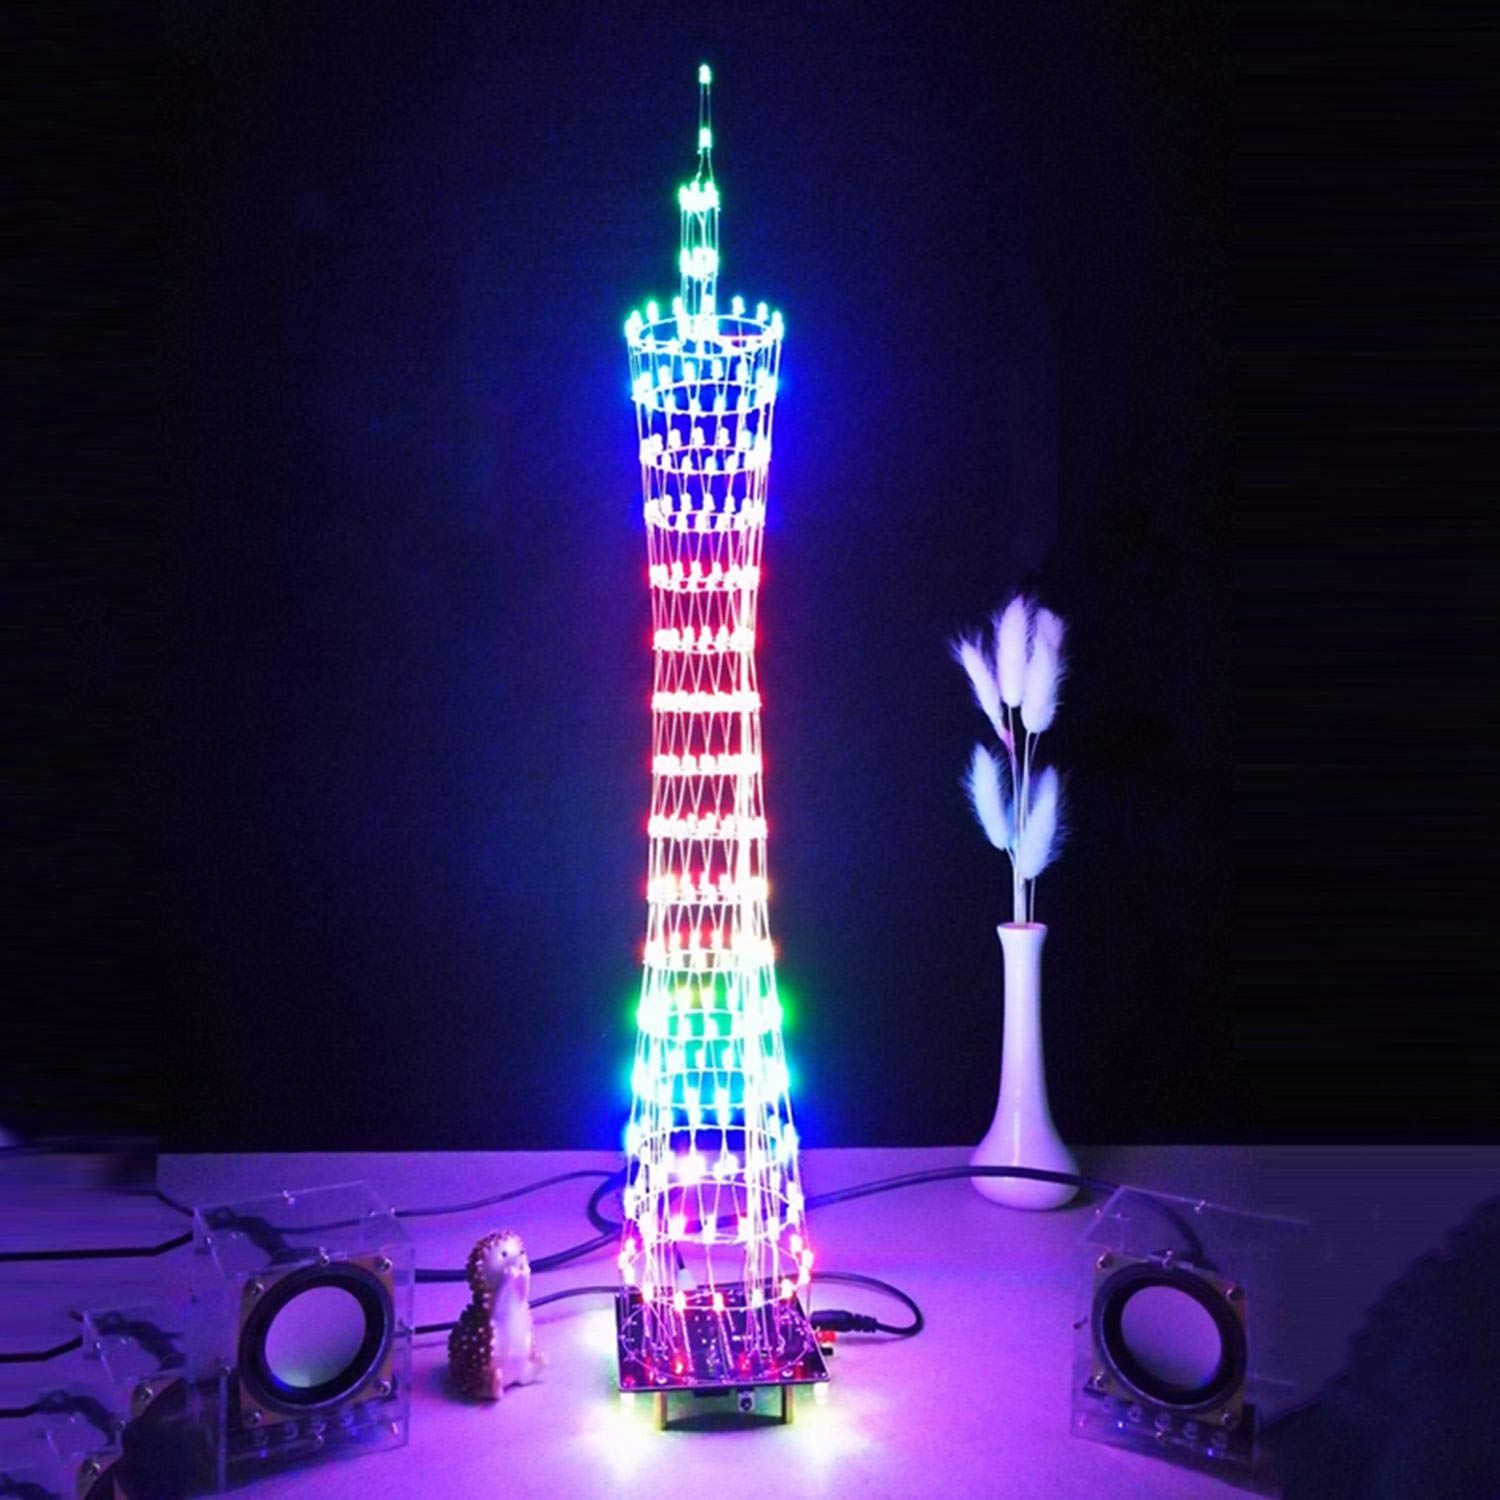 TOOGOO DIY LED LightCanton Tower Suite Wireless Remote Control Electronic Kit Music Spectrum Soldering Kits DIY Brain-Training Toy GOMASINSUD70996